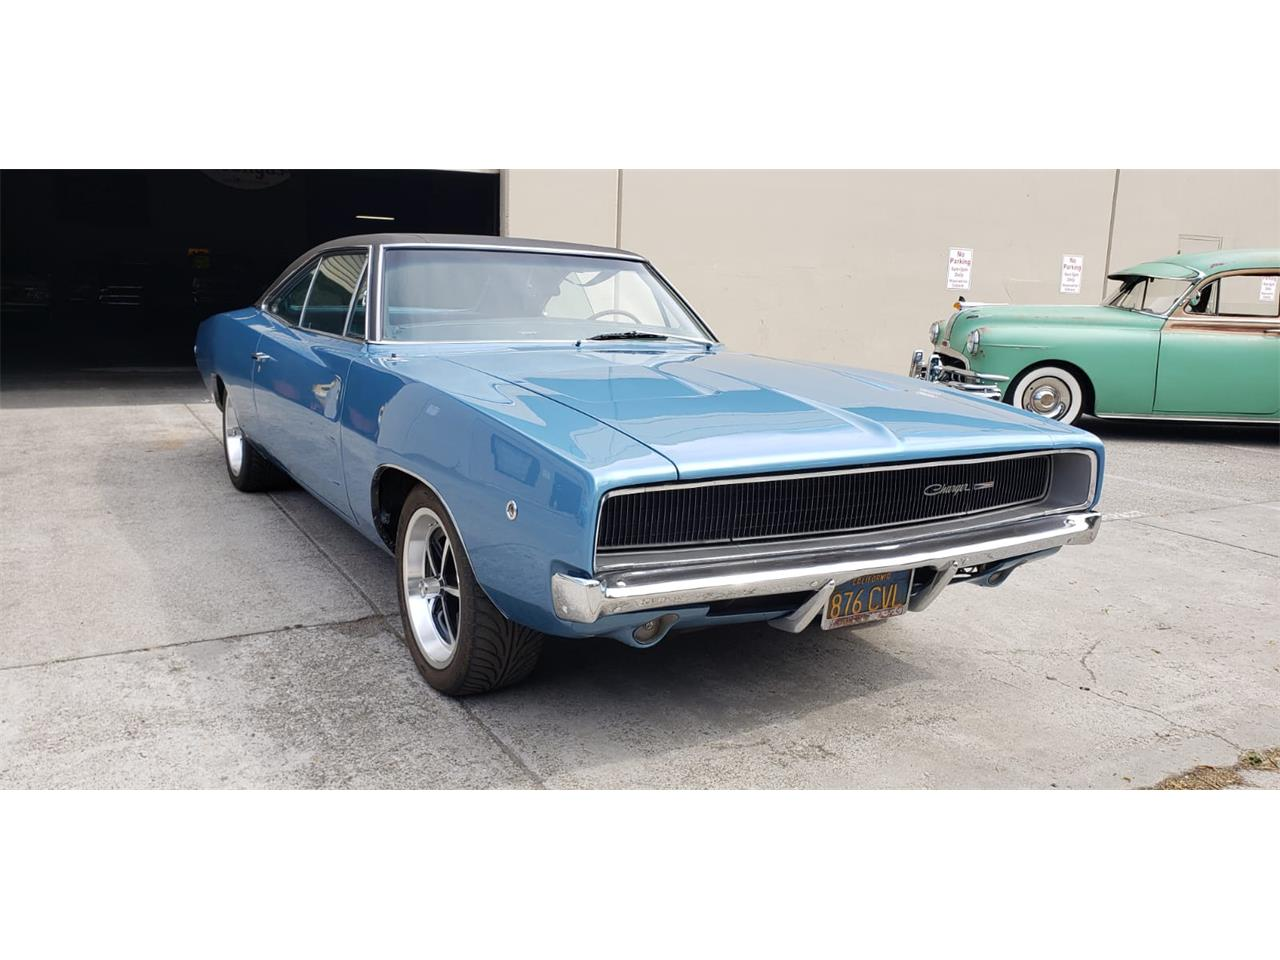 1968 Dodge Charger (CC-1359484) for sale in Stockton, California